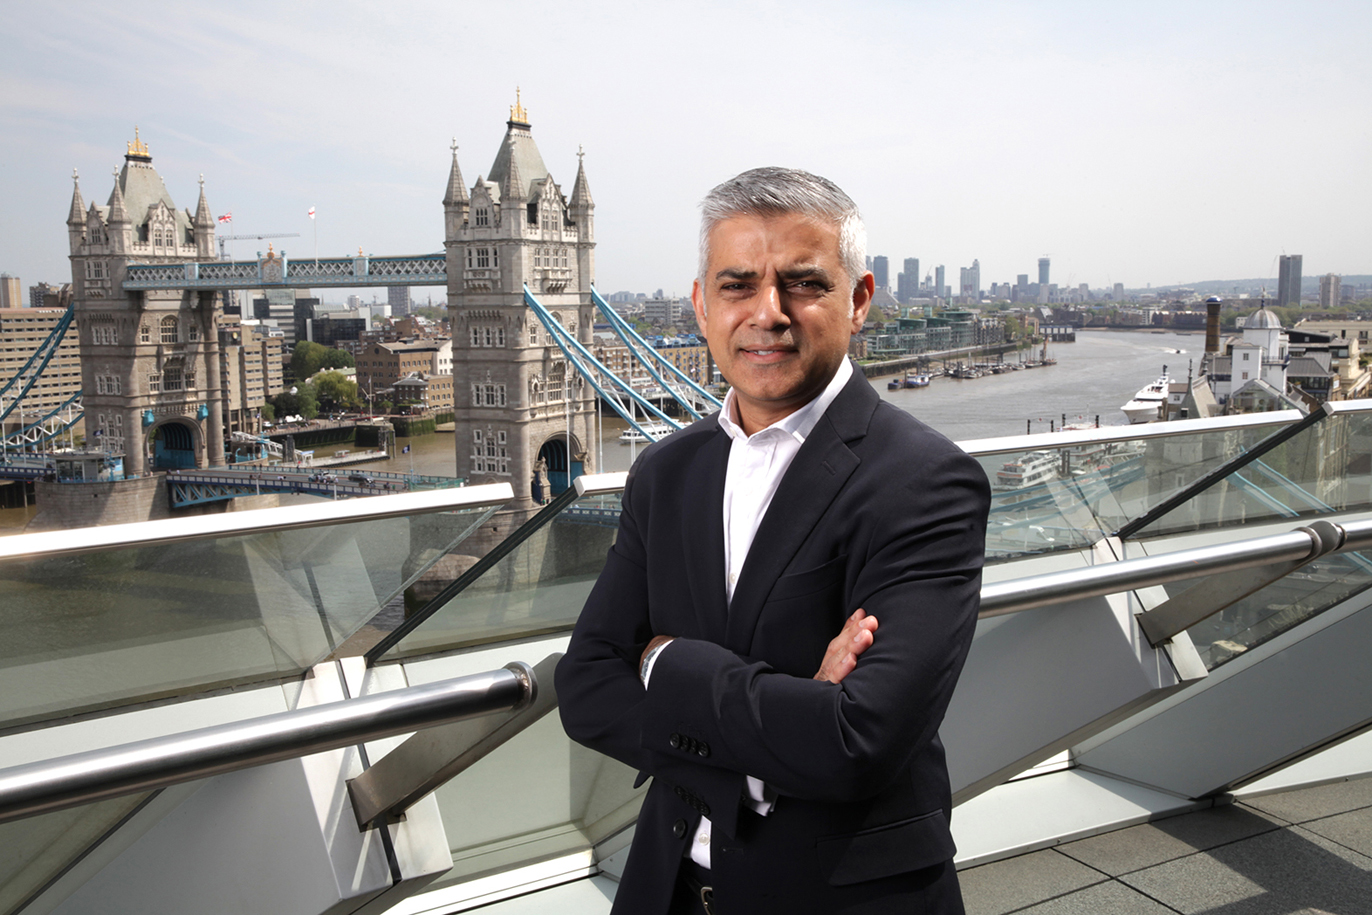 Mayor boosts affordable housing to 50% on Olympic legacy sites